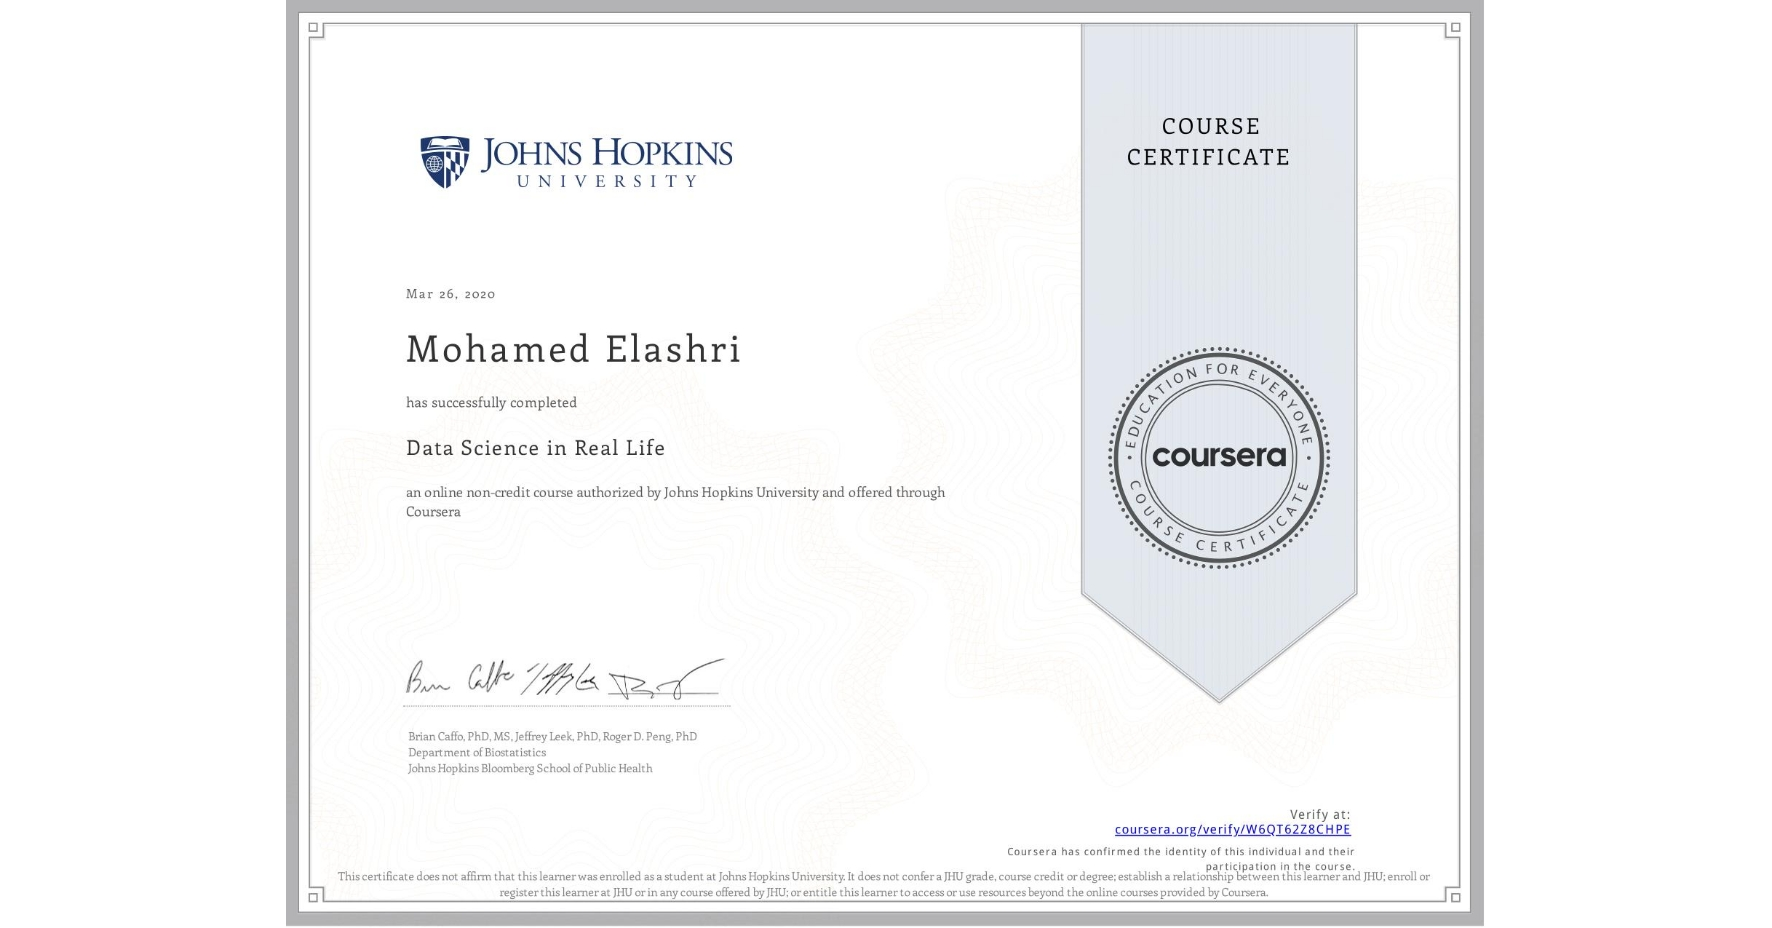 View certificate for Mohamed Elashri, Data Science in Real Life, an online non-credit course authorized by Johns Hopkins University and offered through Coursera